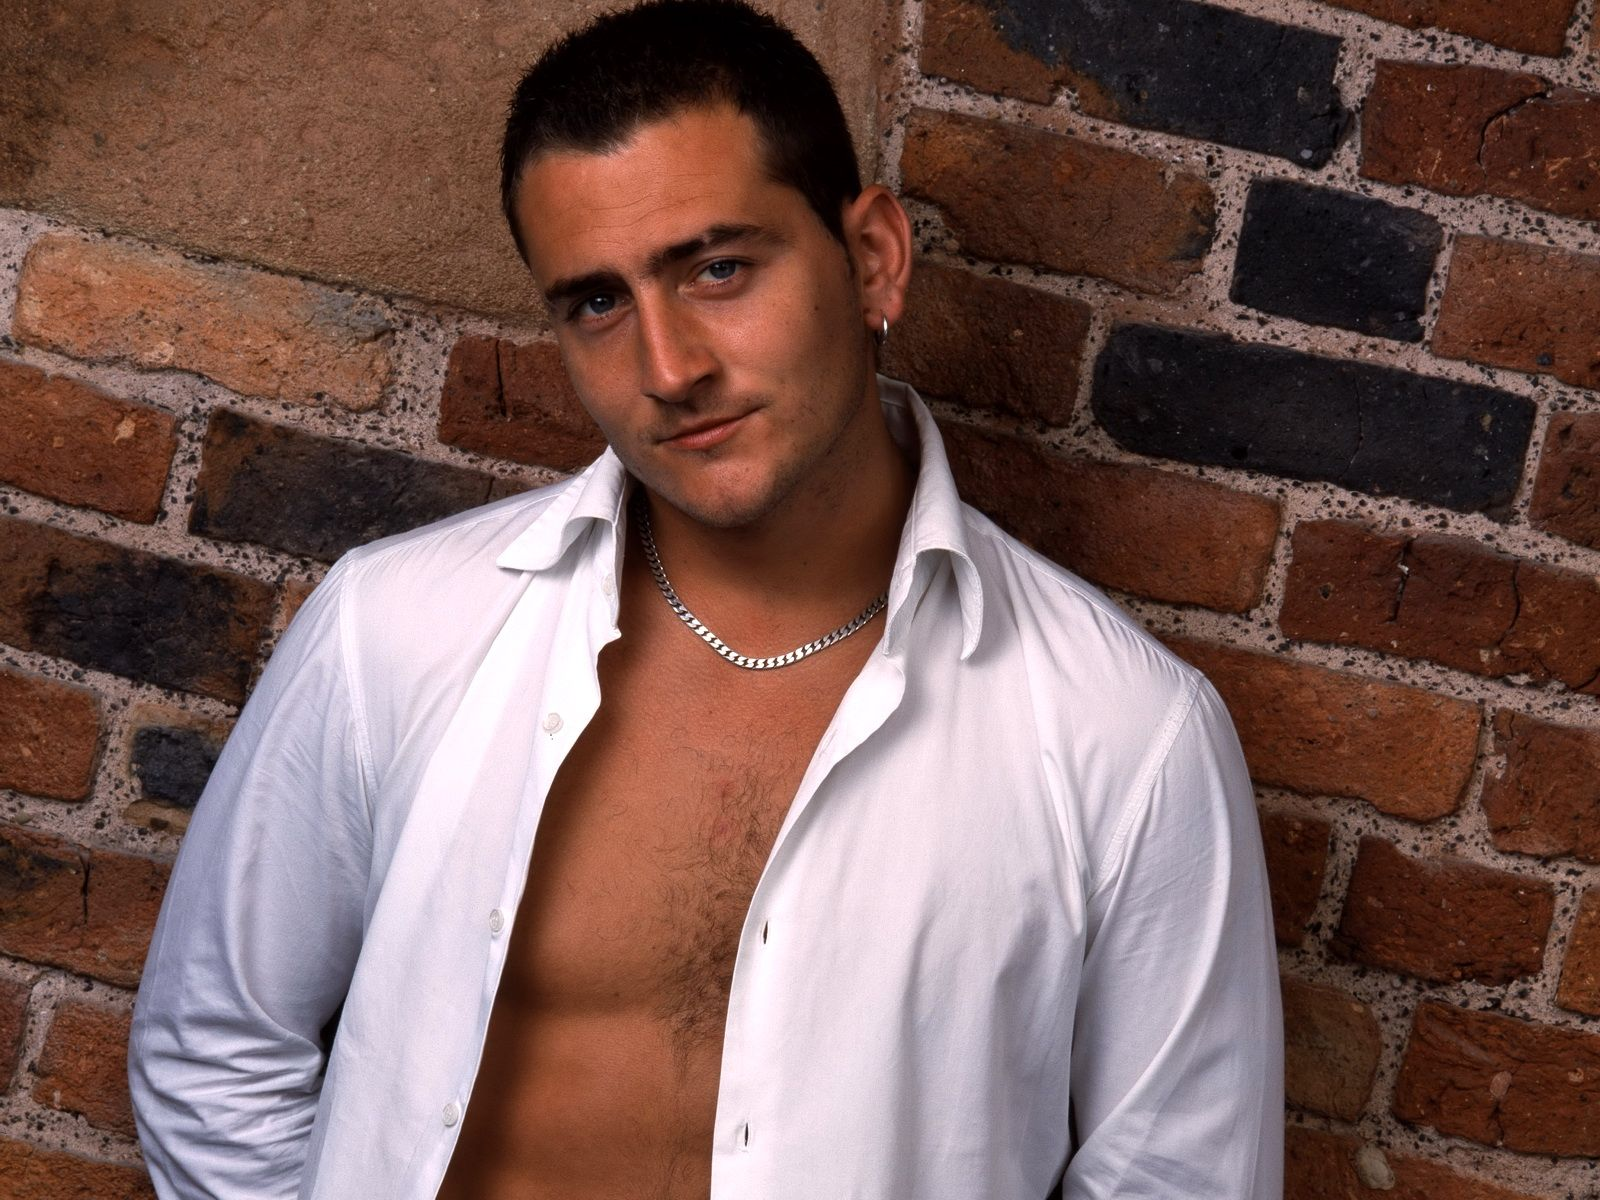 Will Mellor (born 1976) nudes (95 photos), Sexy, Fappening, Feet, cleavage 2020